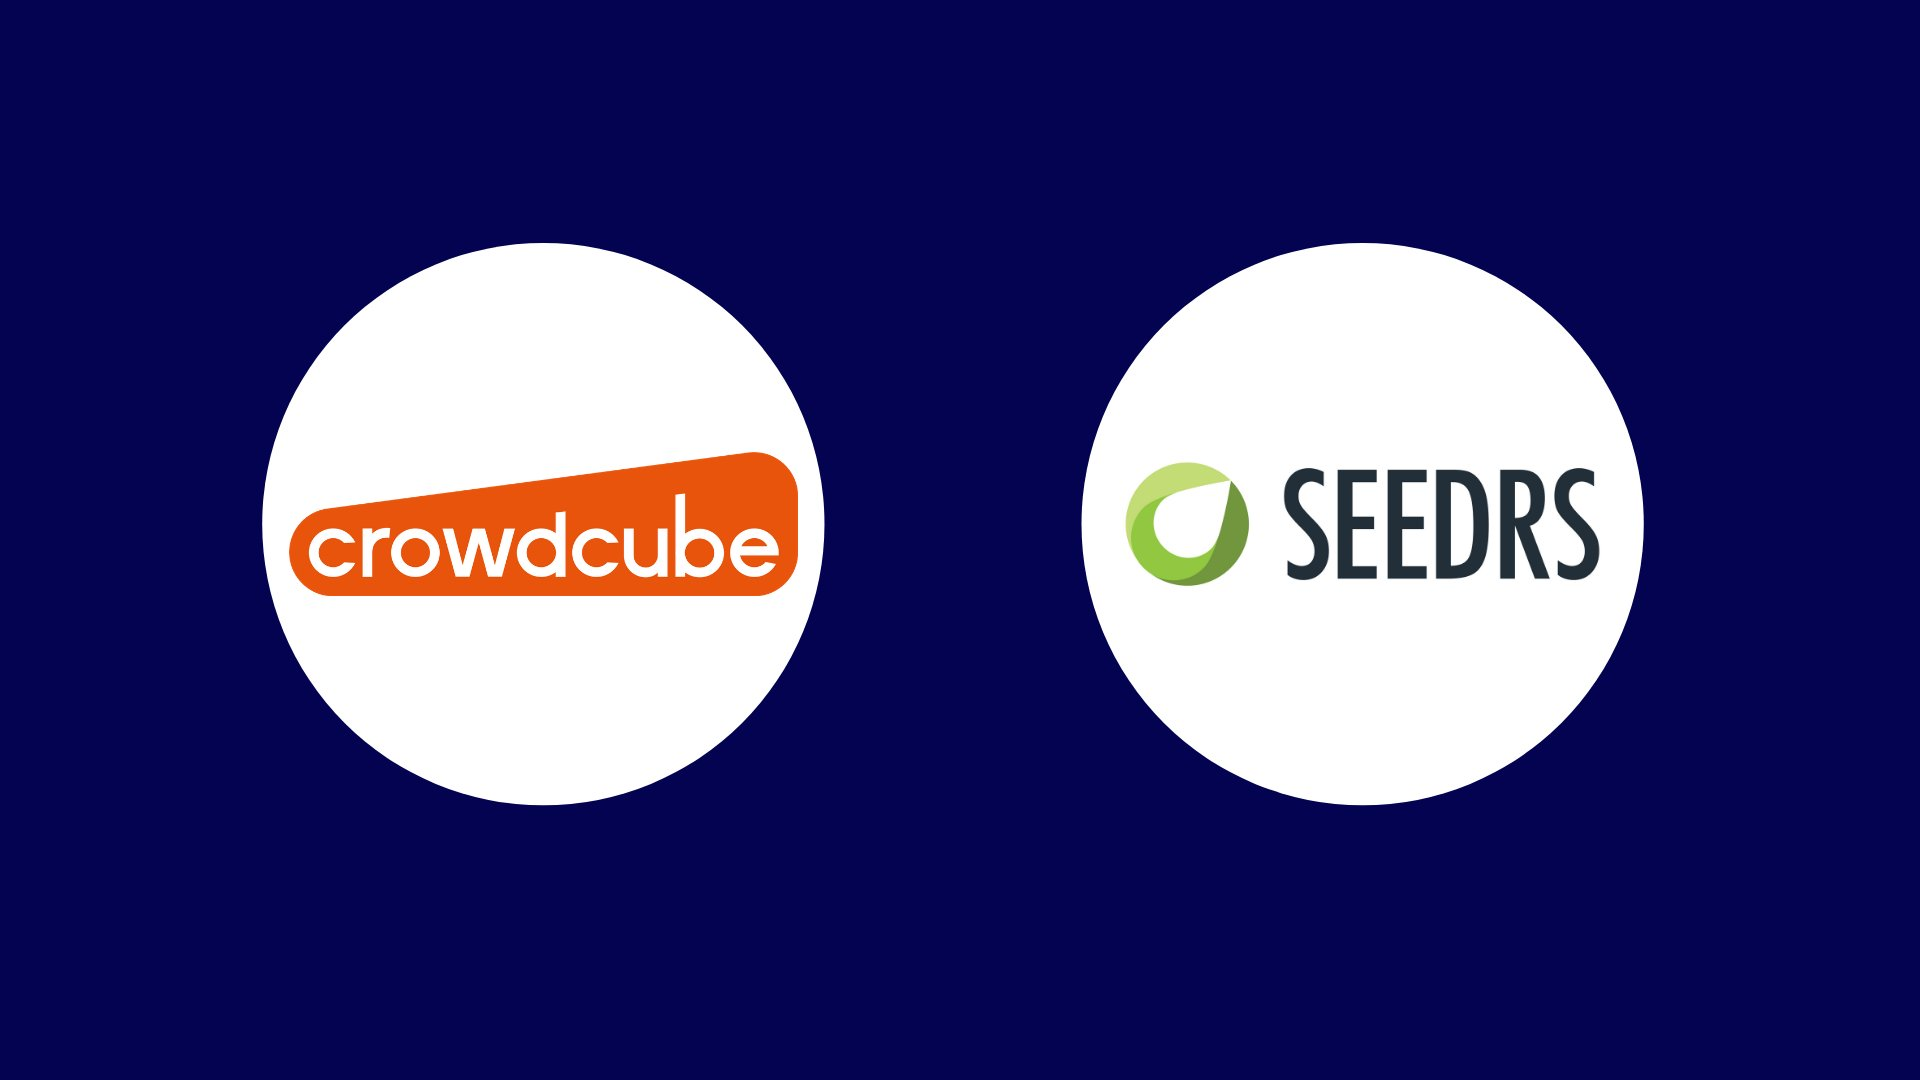 Crowdcube and Seedrs logos